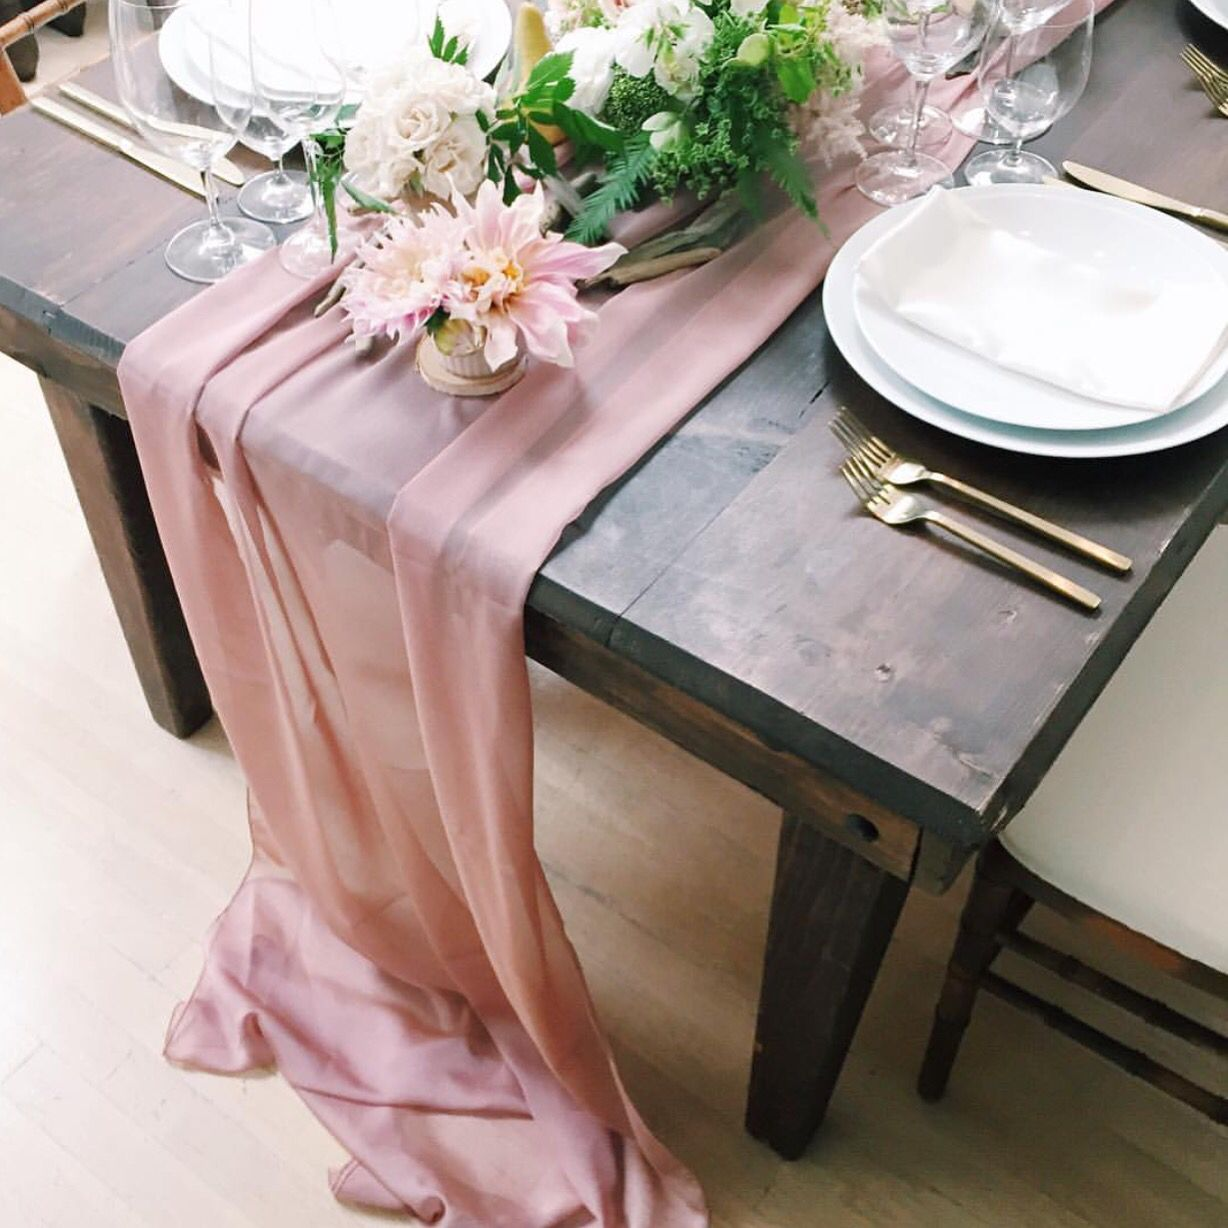 Our New Blush Color Chiffon Makes For A Beautiful Runner Event Planner Jubileelau Fls By Michaeldaigiandesign Wildflowerlinen